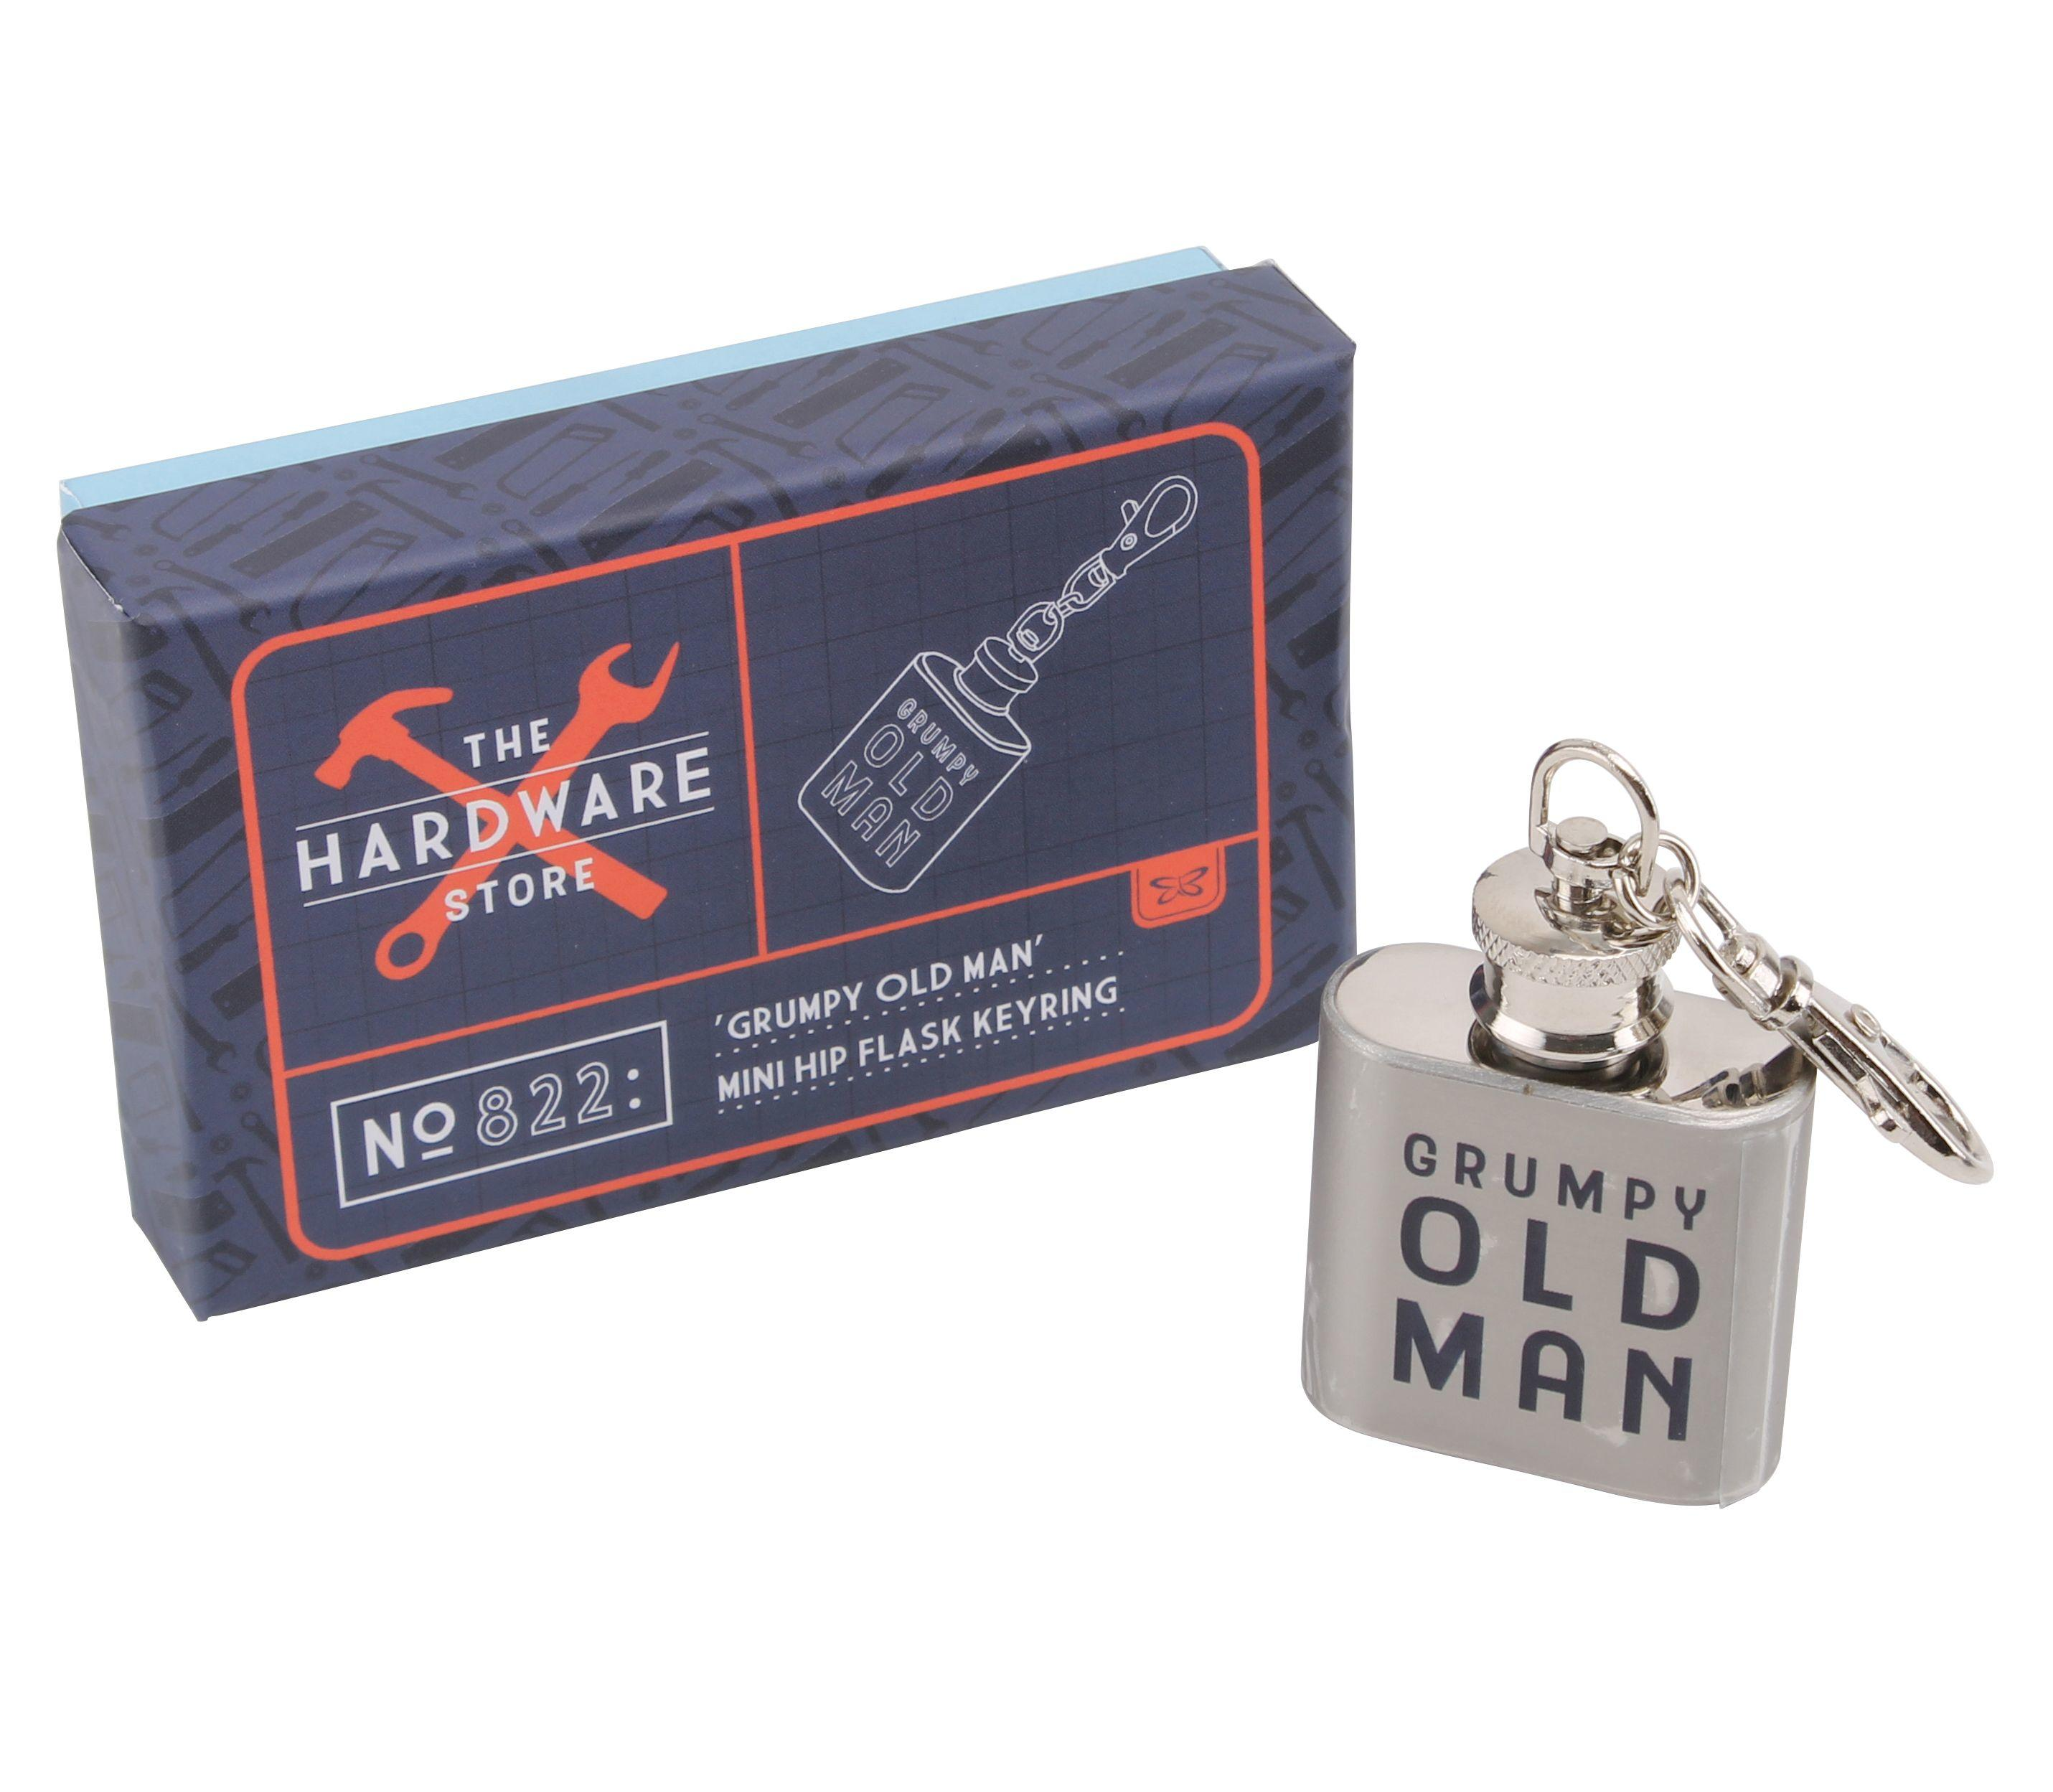 FLASK KEYRING GRUMPY OLD MAN